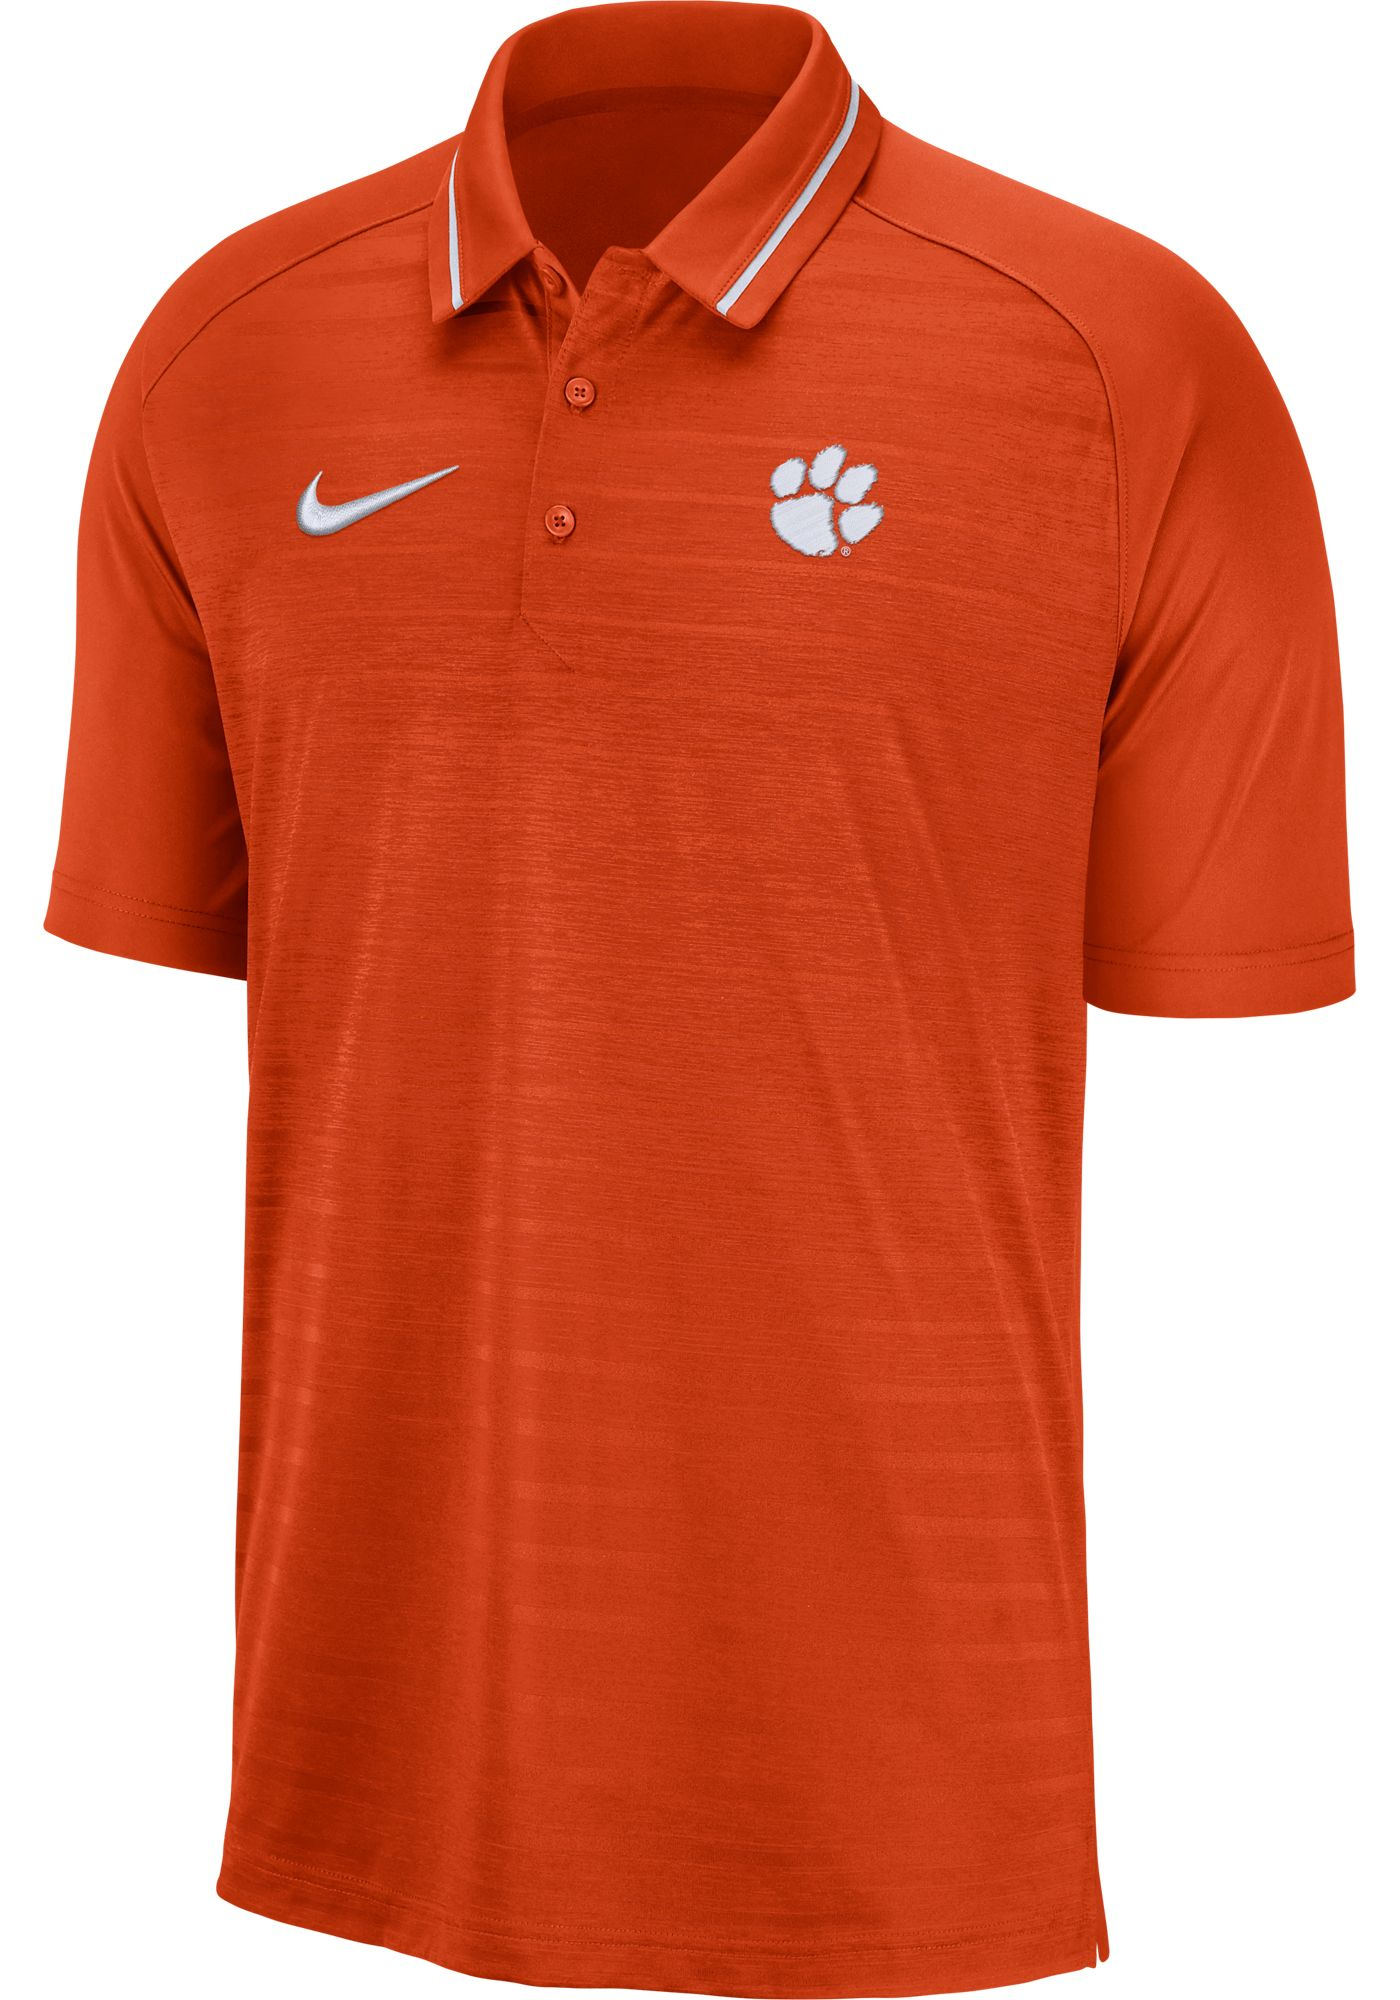 Nike Men's Clemson Tigers Orange Dri-FIT Striped Polo